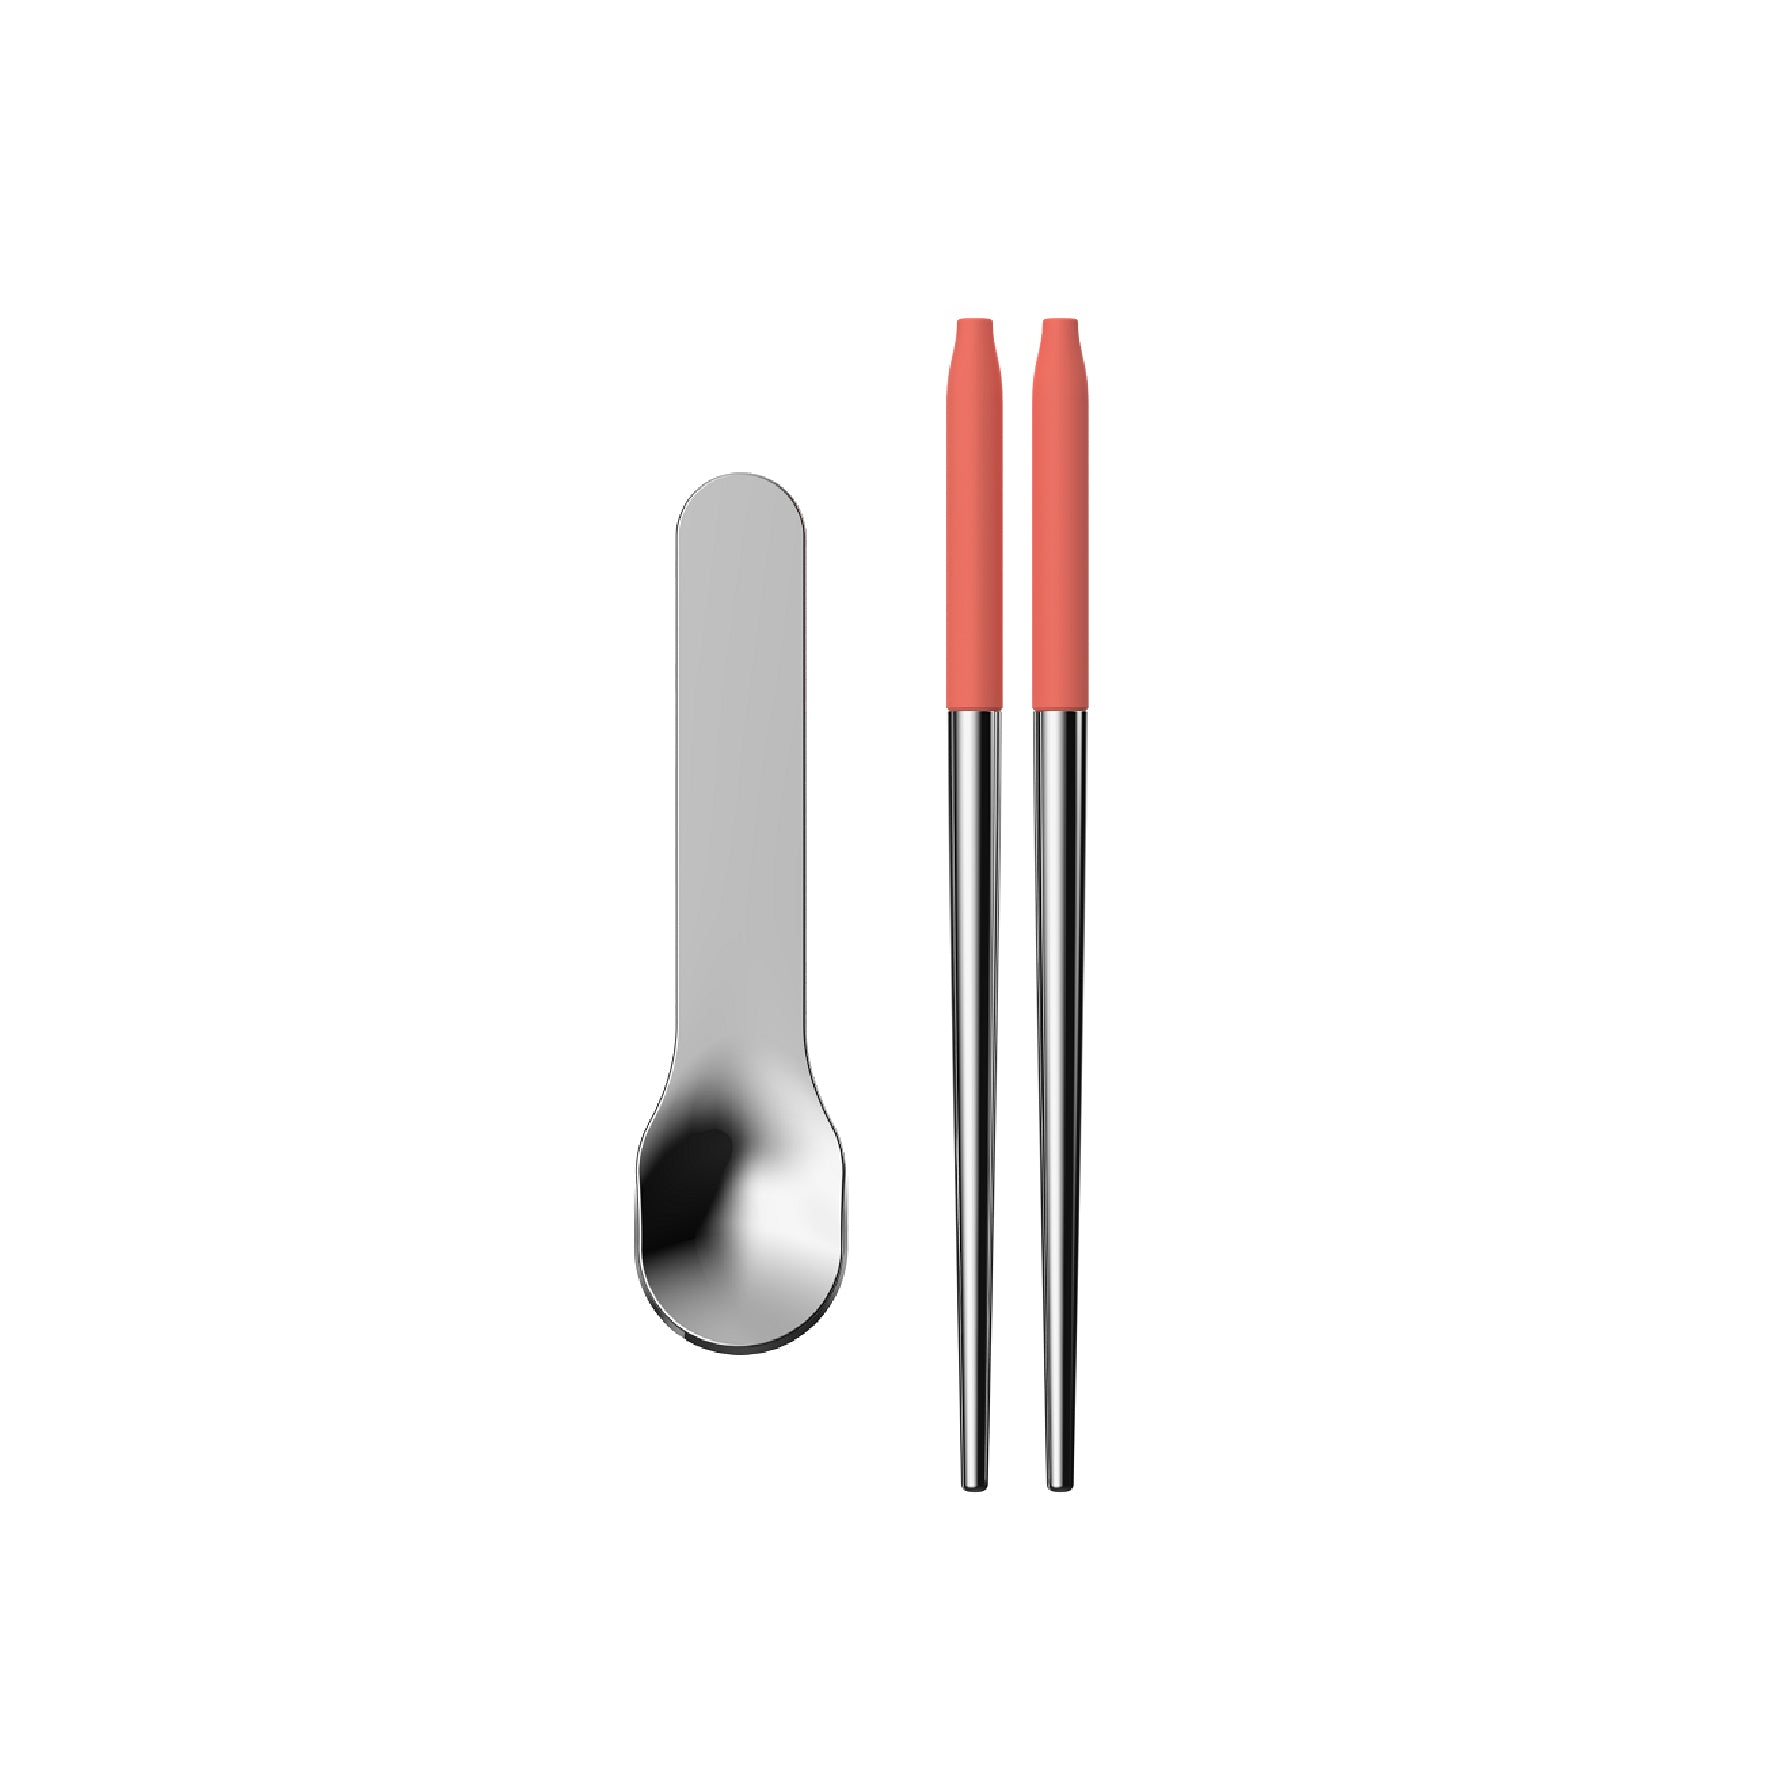 Utillife Cutlery Set - Coral